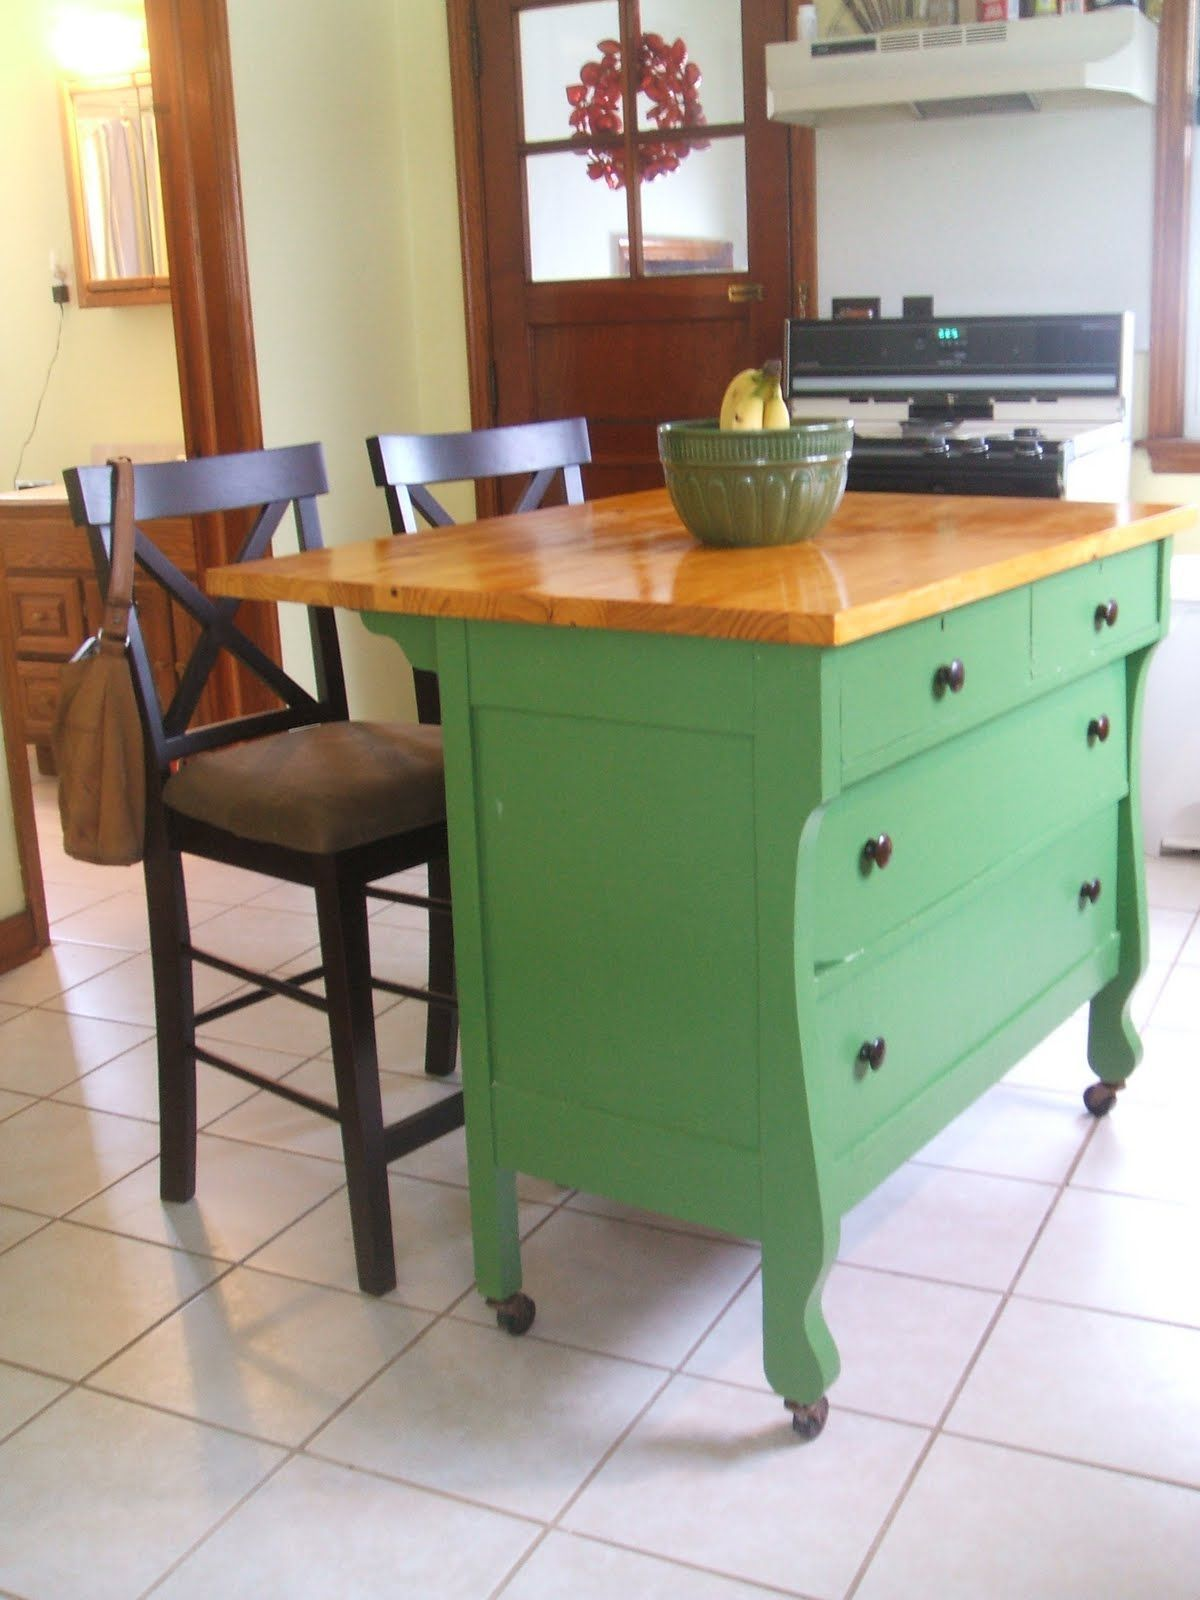 Kitchen Island Ideas Small Space kitchen , small and portable kitchen island ideas : diy cute and